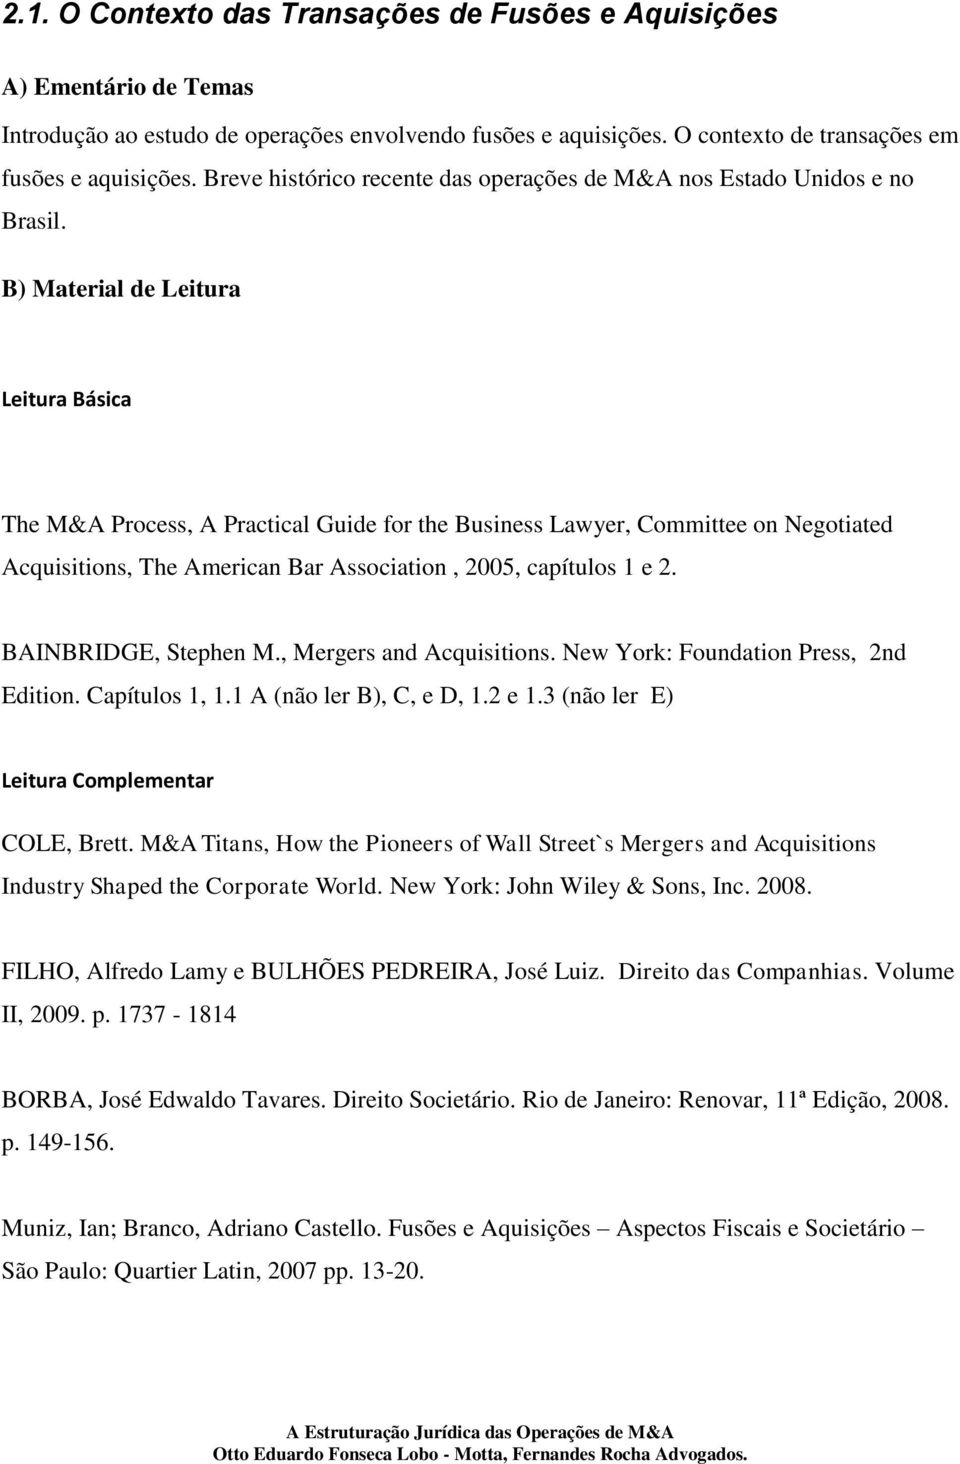 B) Material de Leitura Leitura Básica The M&A Process, A Practical Guide for the Business Lawyer, Committee on Negotiated Acquisitions, The American Bar Association, 2005, capítulos 1 e 2.